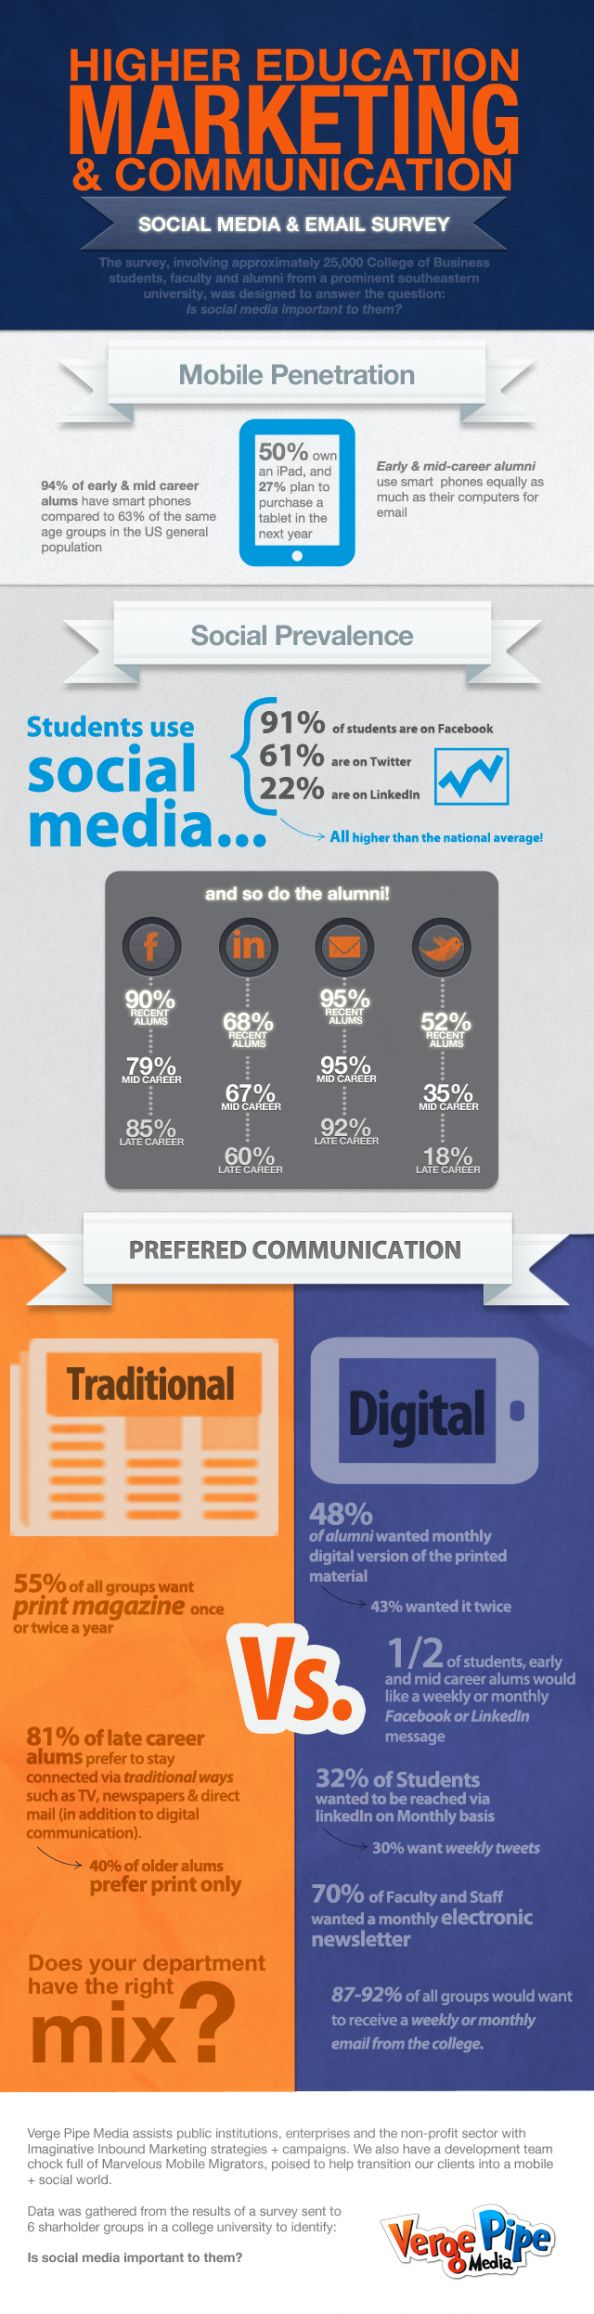 Higher Education #Marketing & #Communication Infographic